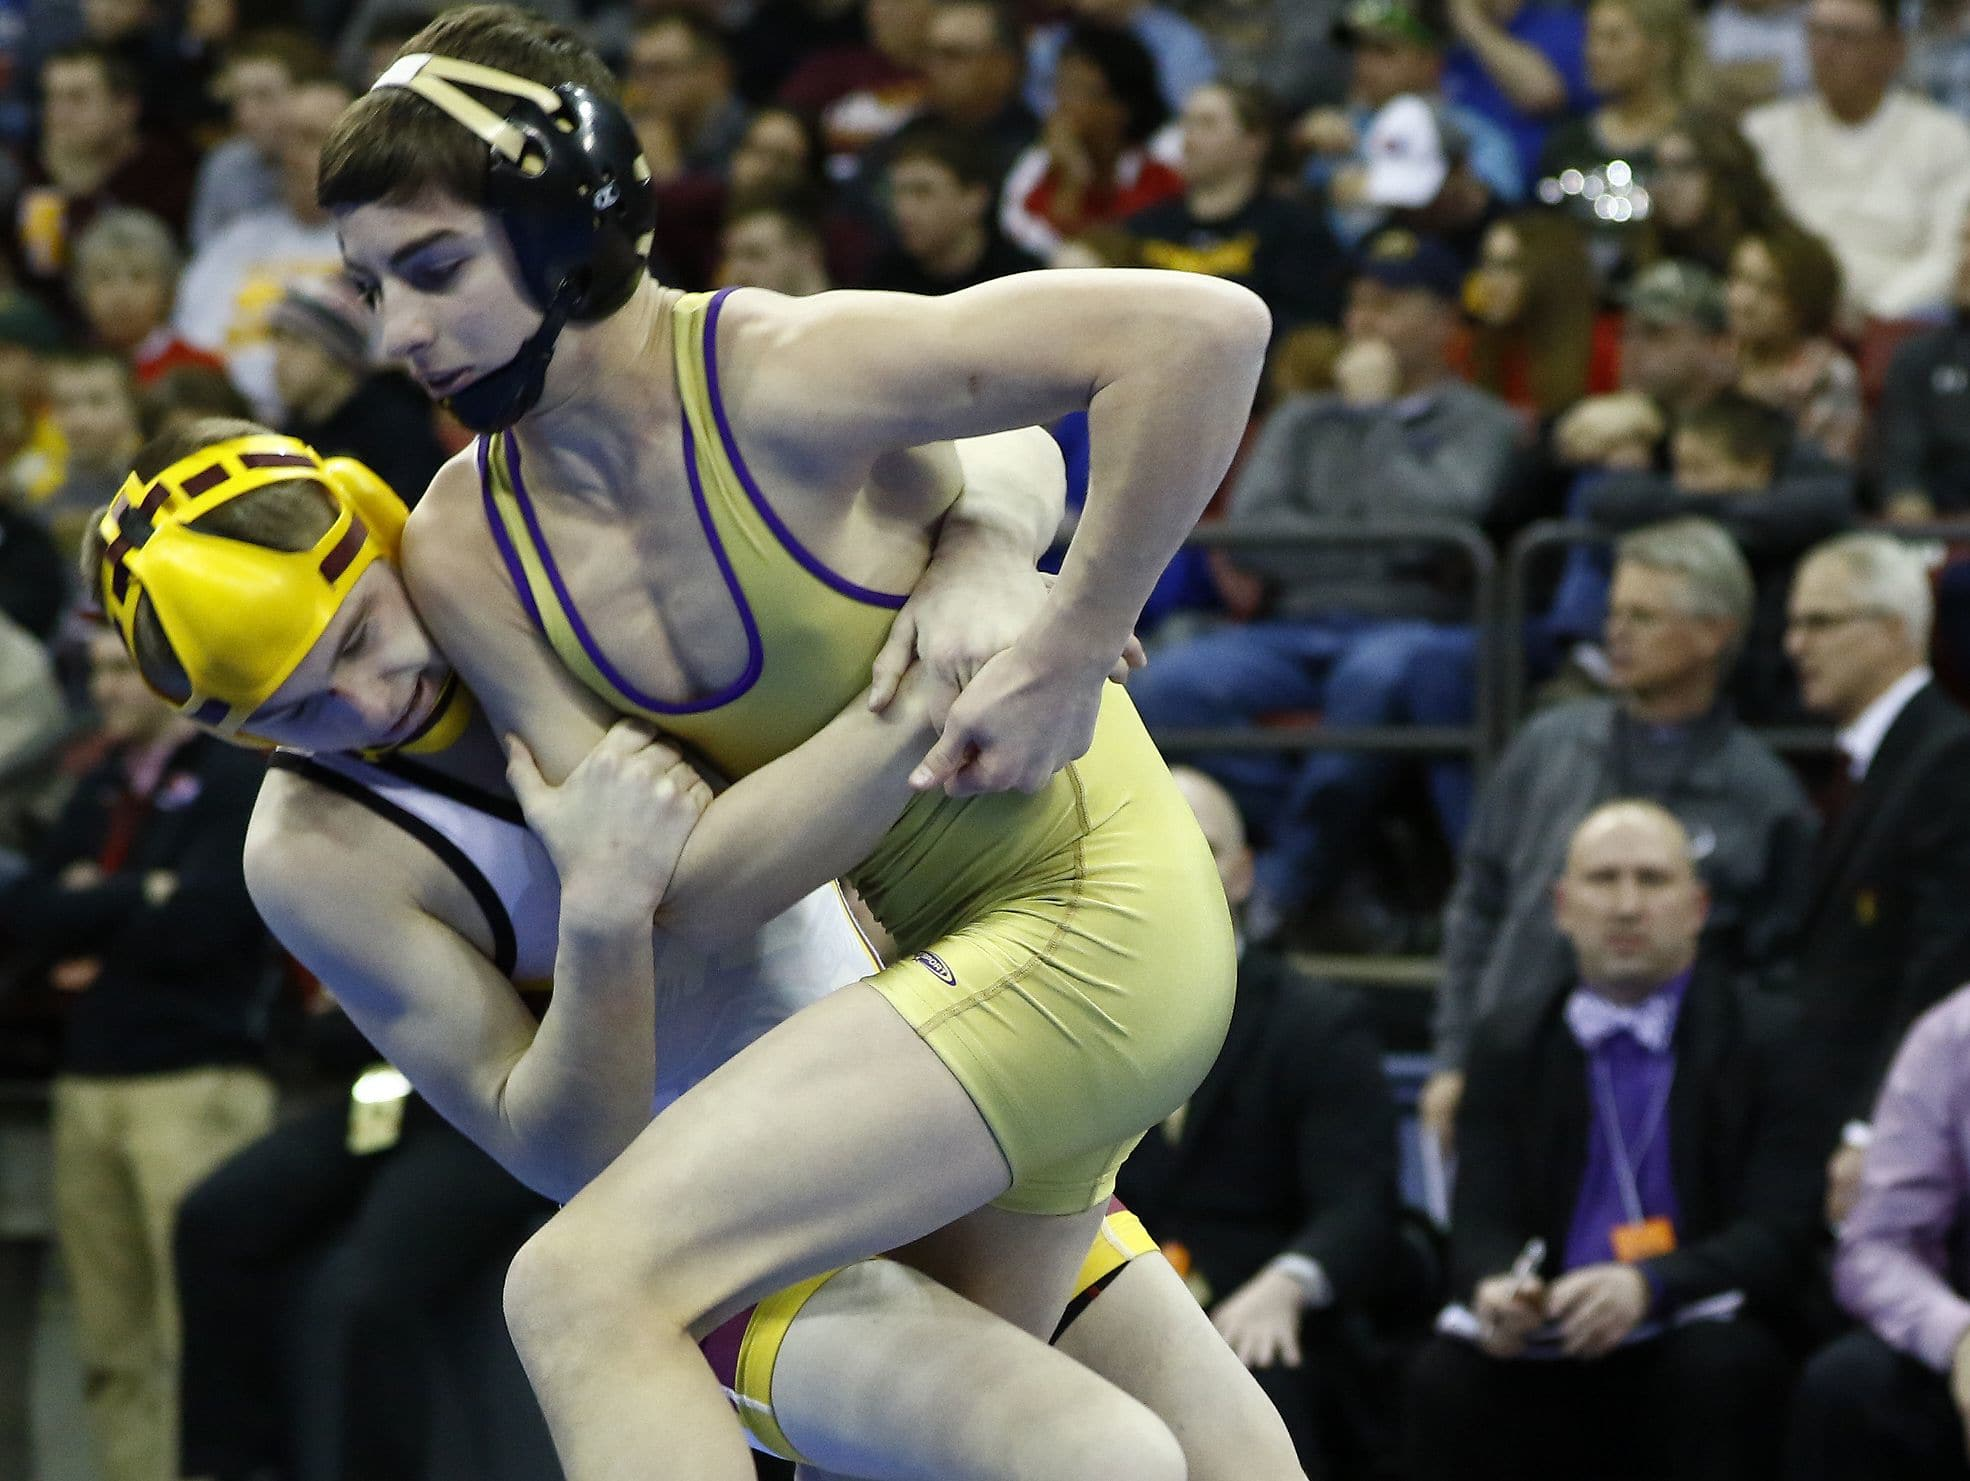 Two Rivers' Joey Bianchi, right, wrestles Luxemburg-Casco's Bryce Bosman during their WIAA Division 2 state championship match on Feb. 27, 2016, at the Kohl Center in Madison. The wrestlers met in the regional, sectional and state finals last year.